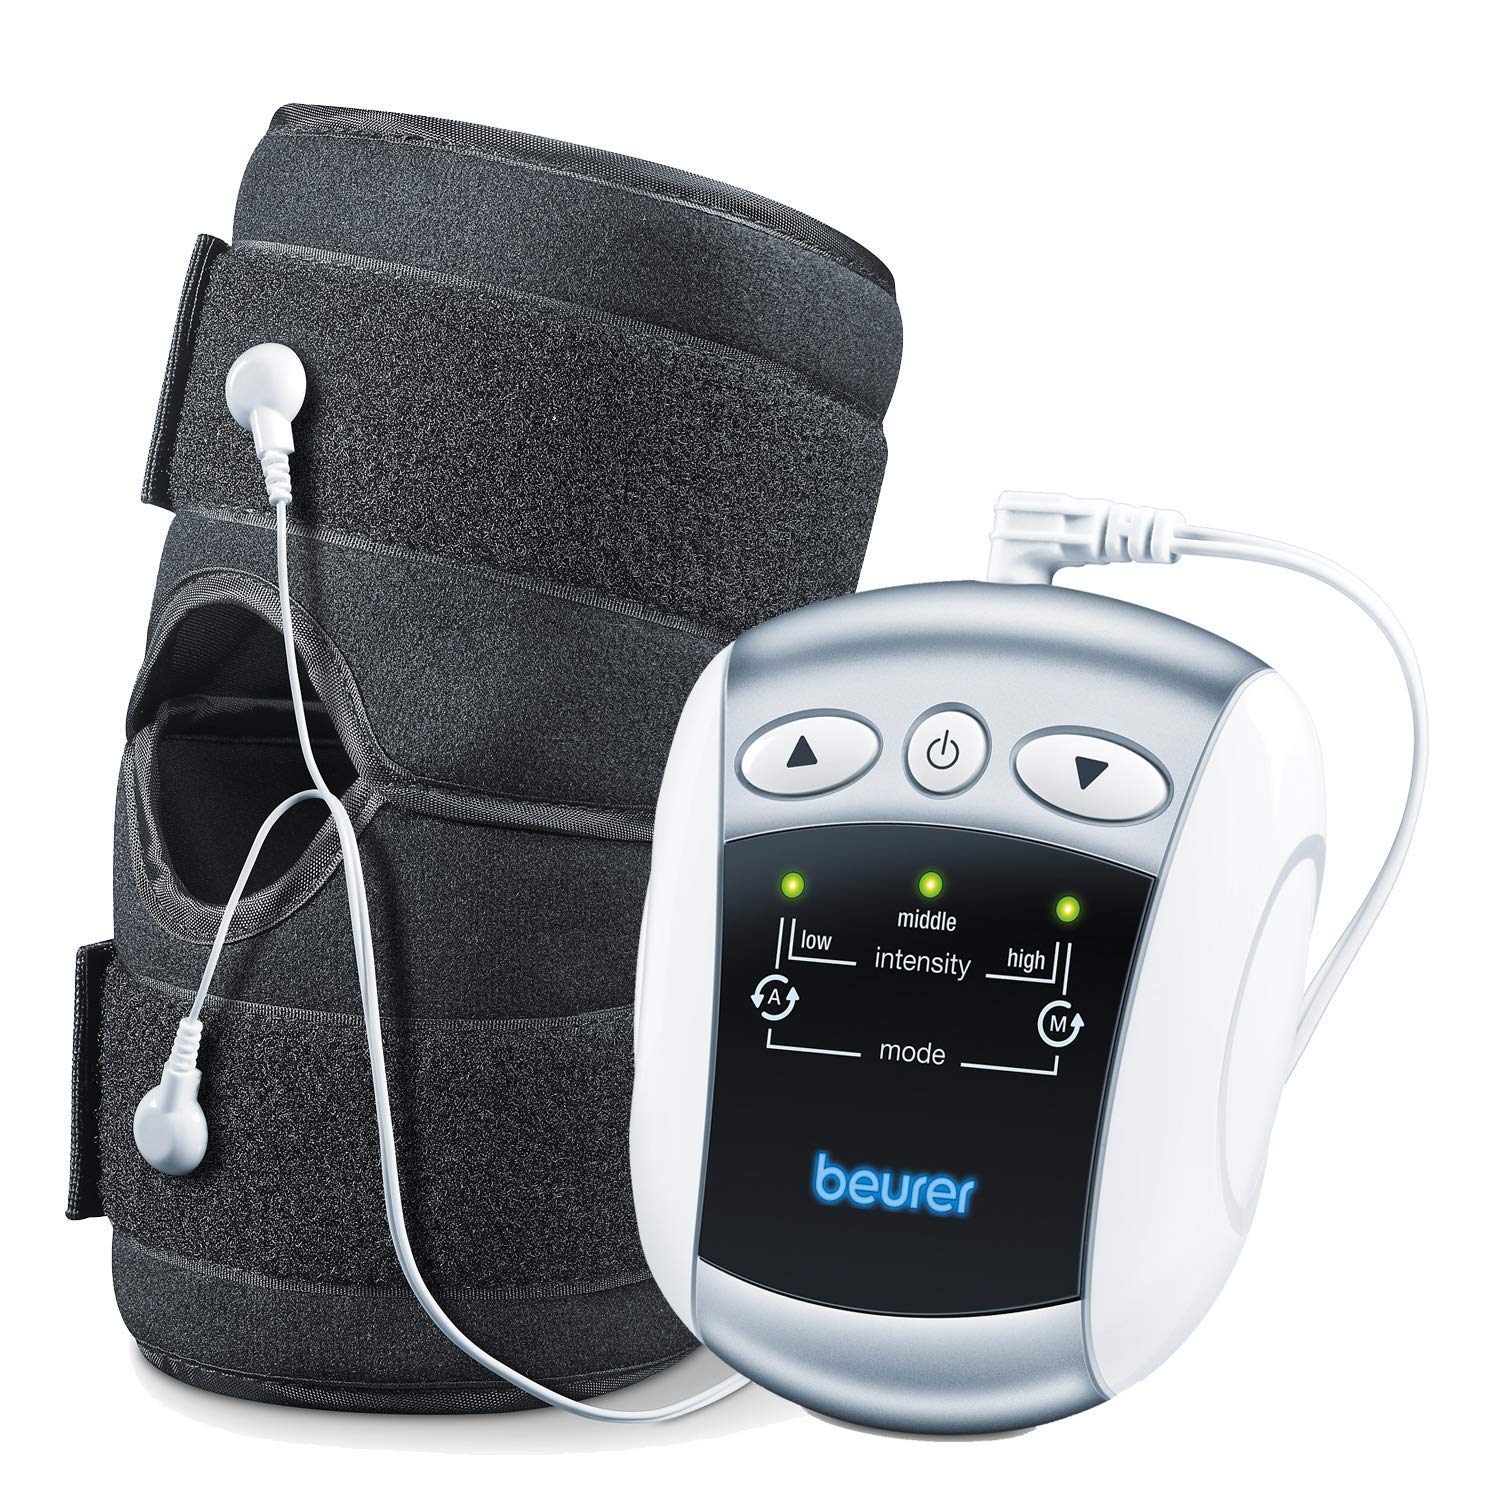 Beurer 2-in-1 Electrostimulation Tens Device with Knee and Elbow Universal Cuff, Stimulates Knee or Elbow to Alleviate Pain, Non Invasive Drug Free Pain Relief, EM34,1 Count,Pack of 1